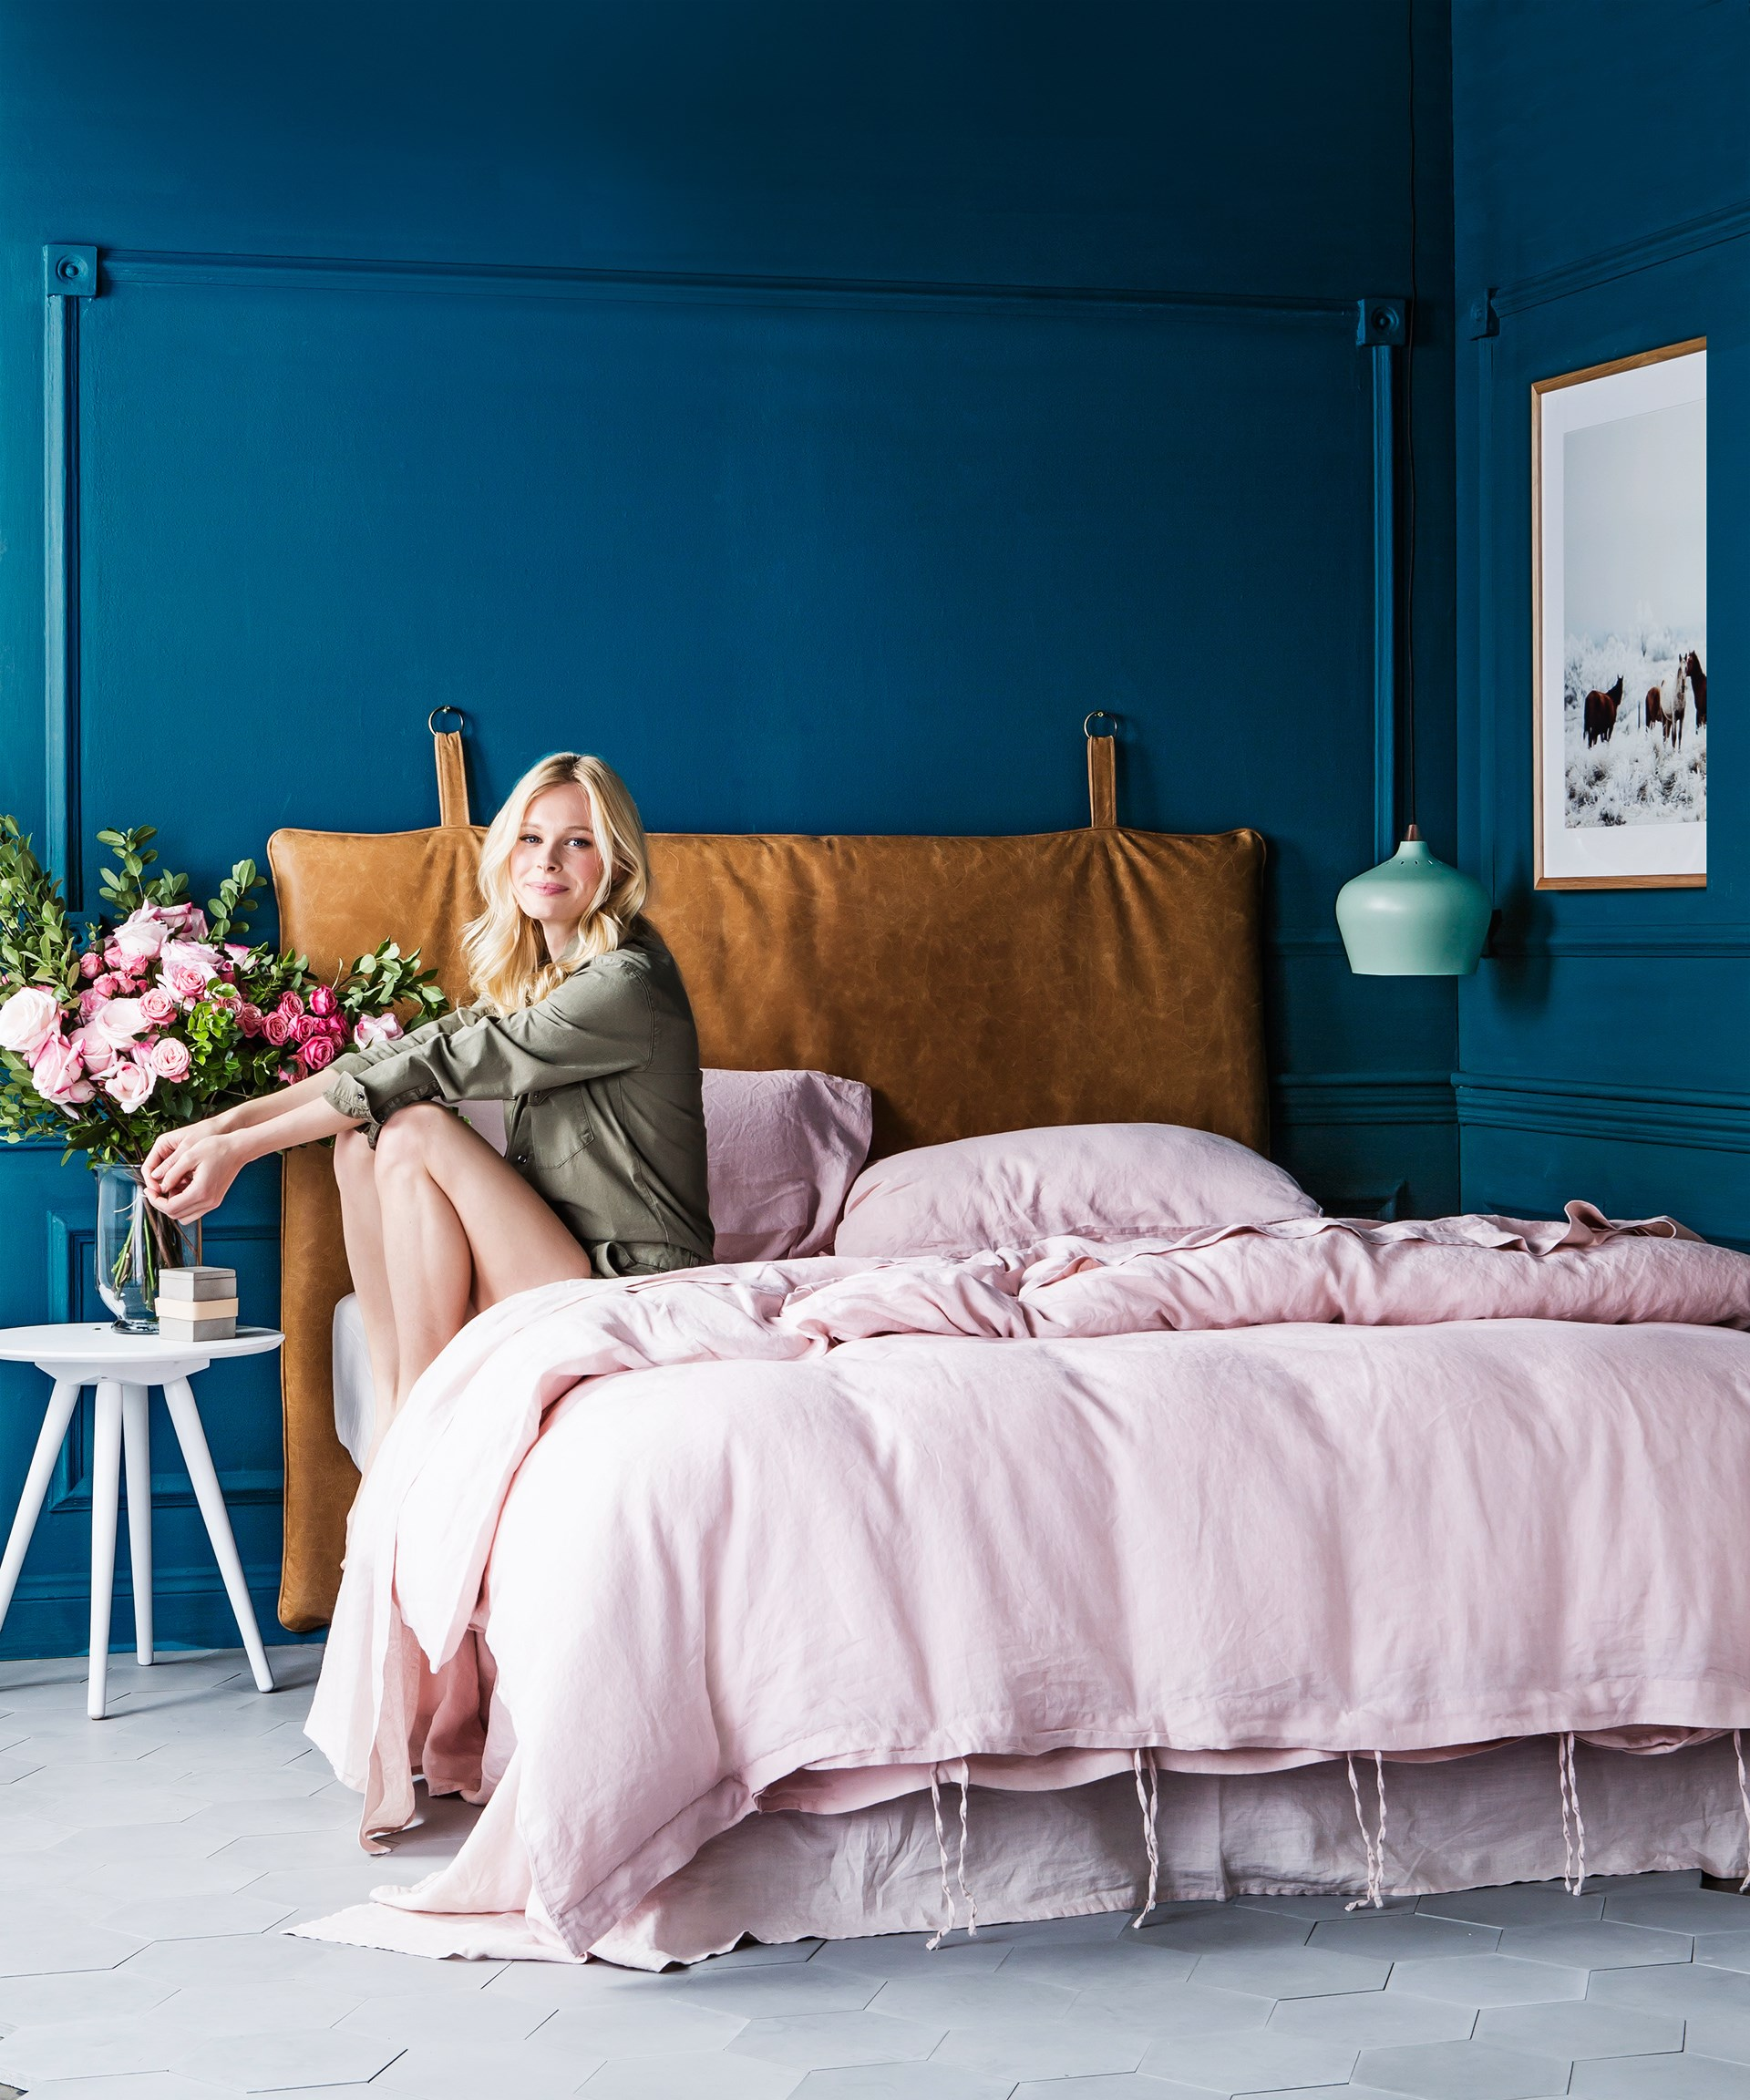 """Mix different textures like sumptuous linen and natural leather with dramatic blue-green walls for a [dreamy bedroom space](http://www.homestolove.com.au/dreamy-bedroom-accessories-2318